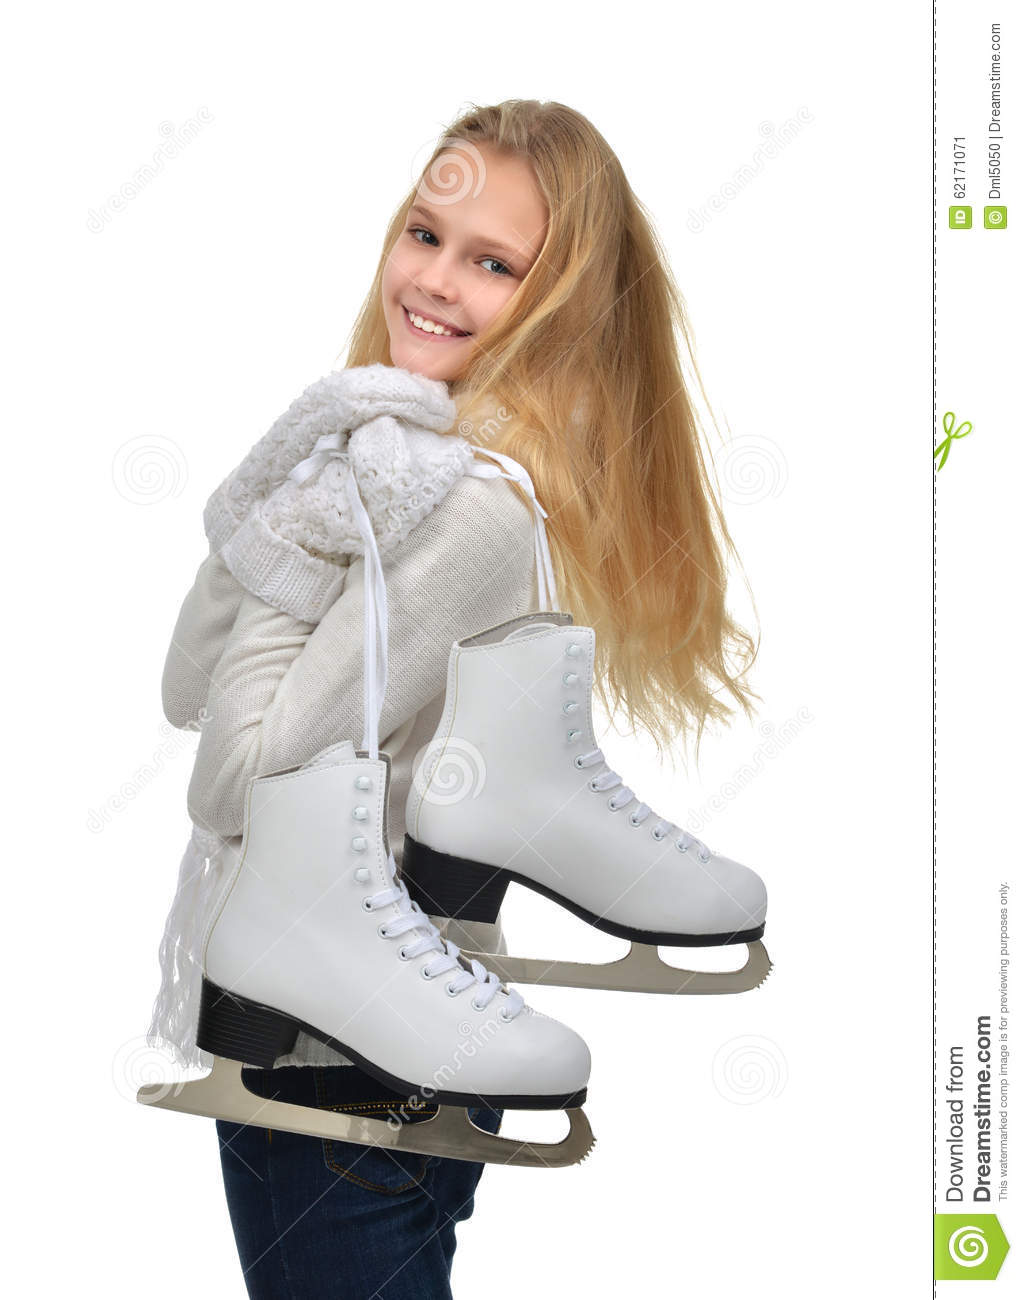 Young teenage girl holding ice skates for winter ice skating sport activity smiling